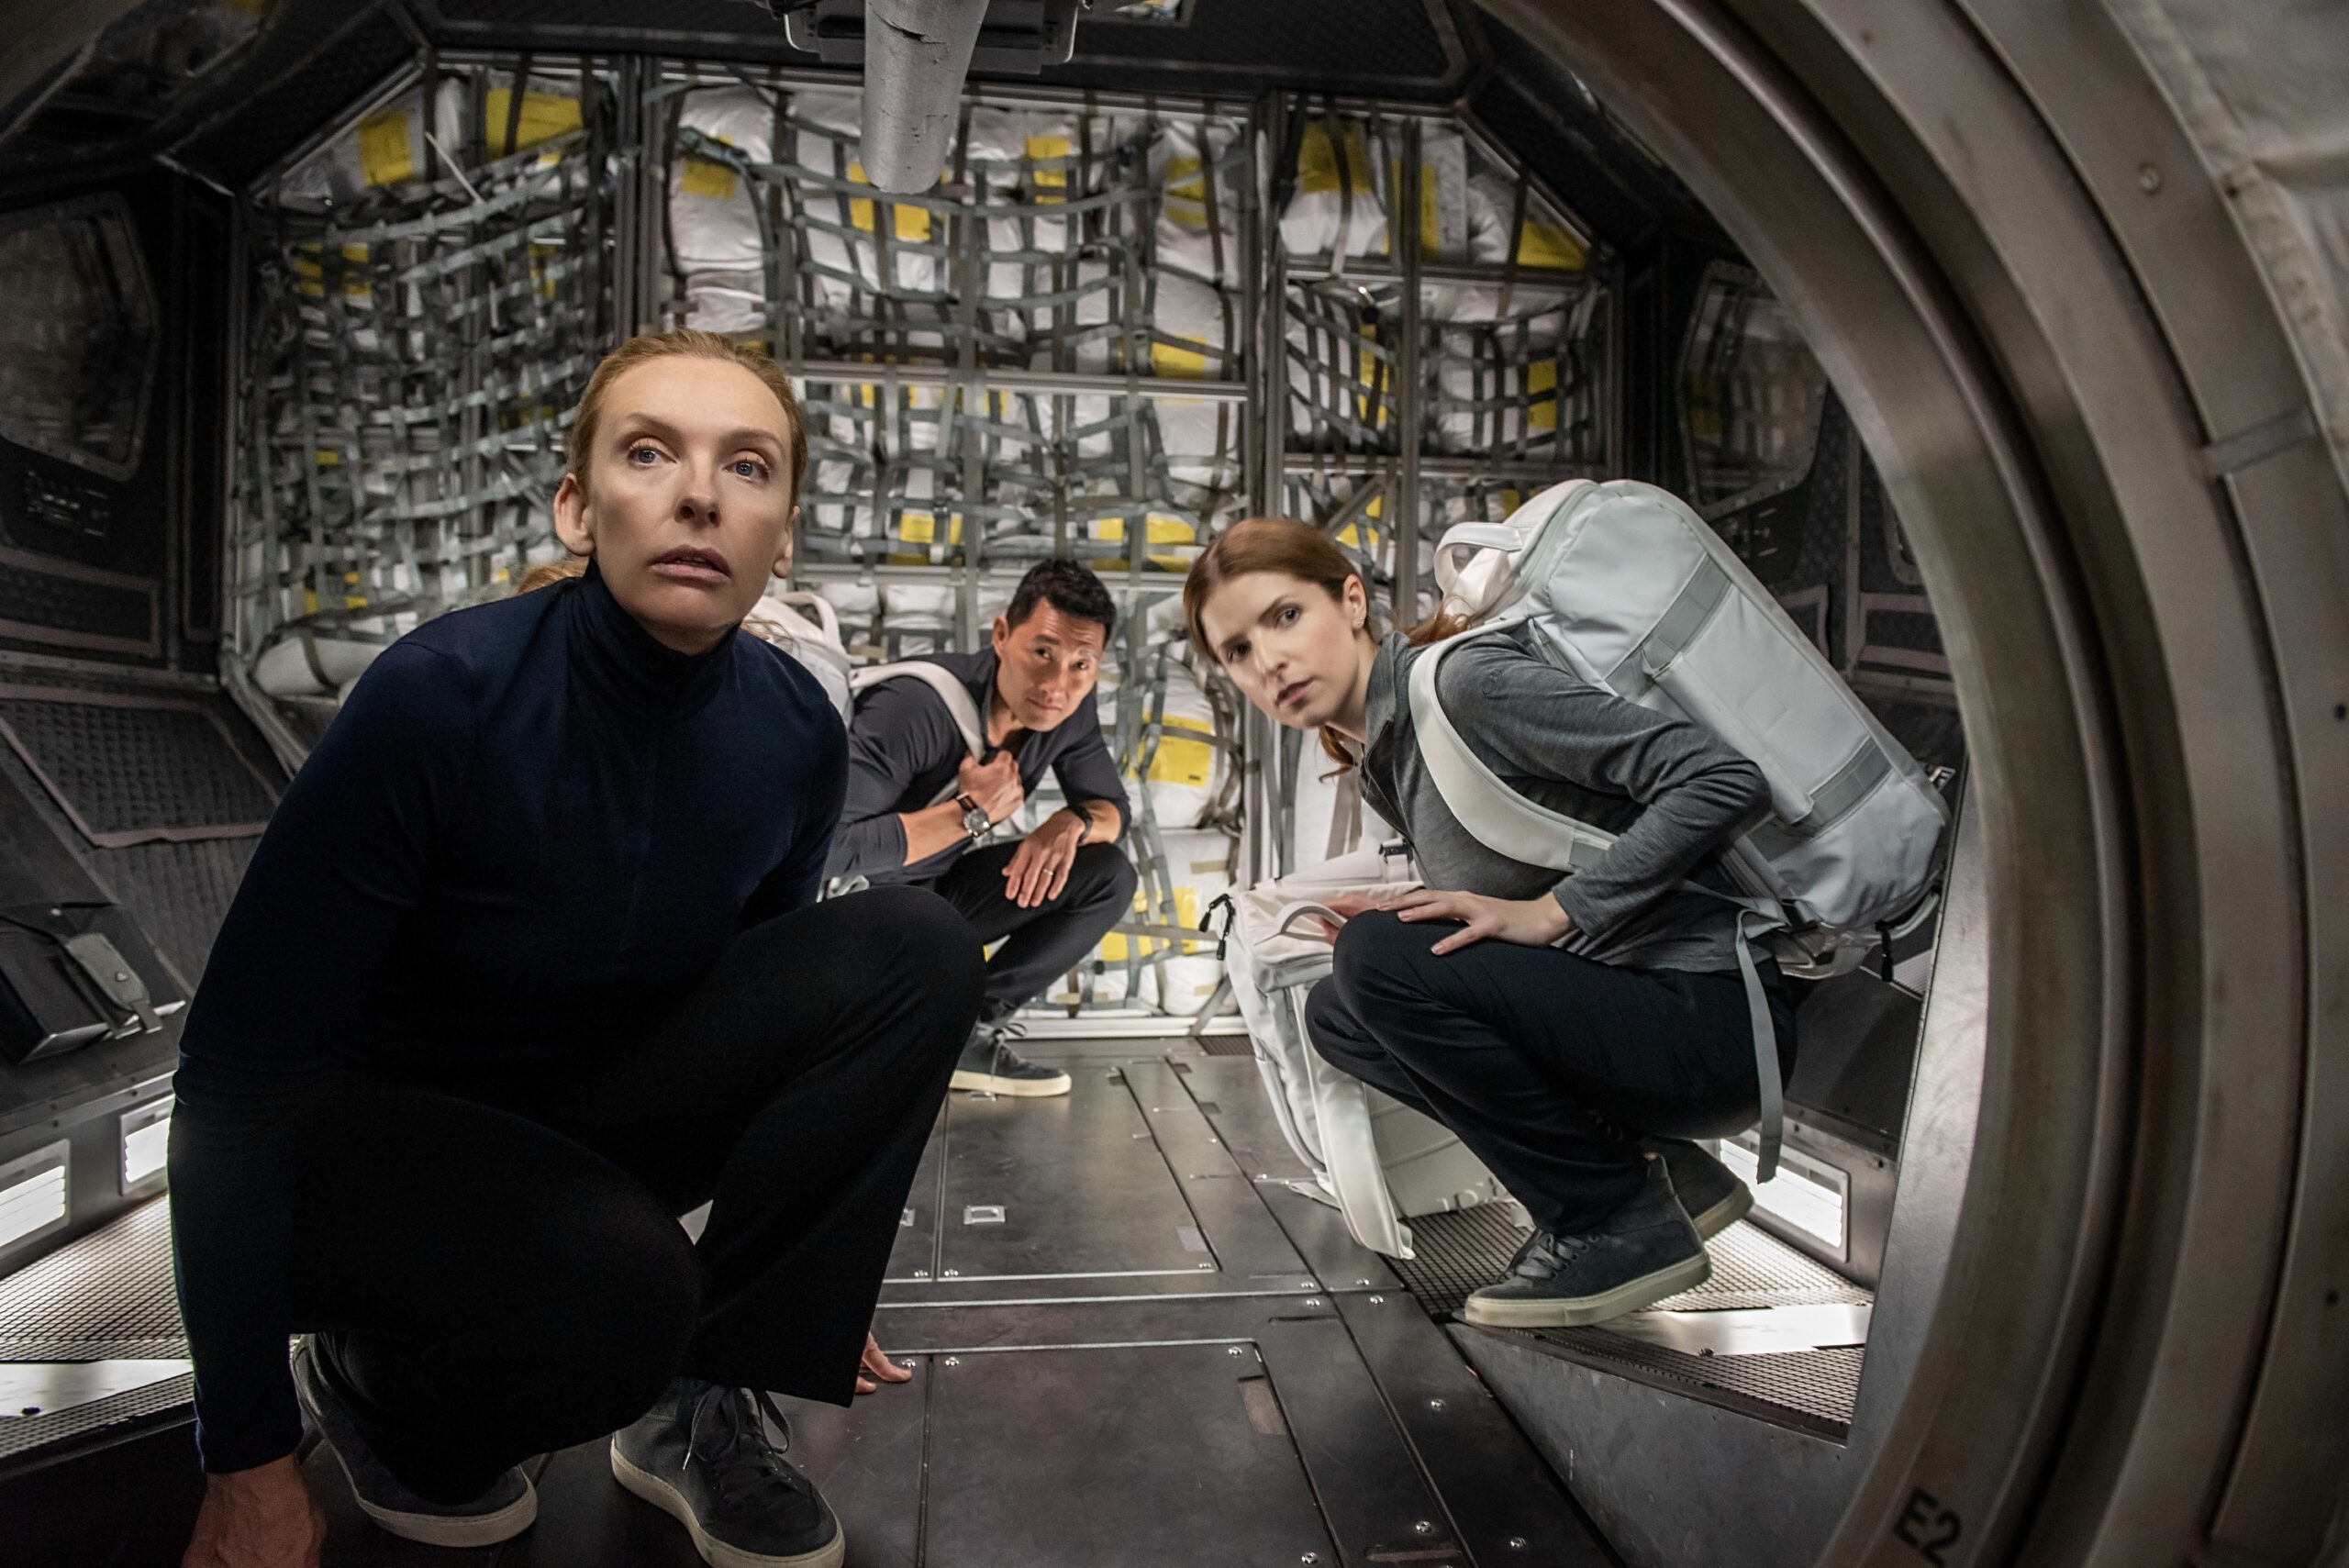 HustleTV.tv Anna Kendrick Meets Uninvited Astronaut in Stowaway Now Streaming